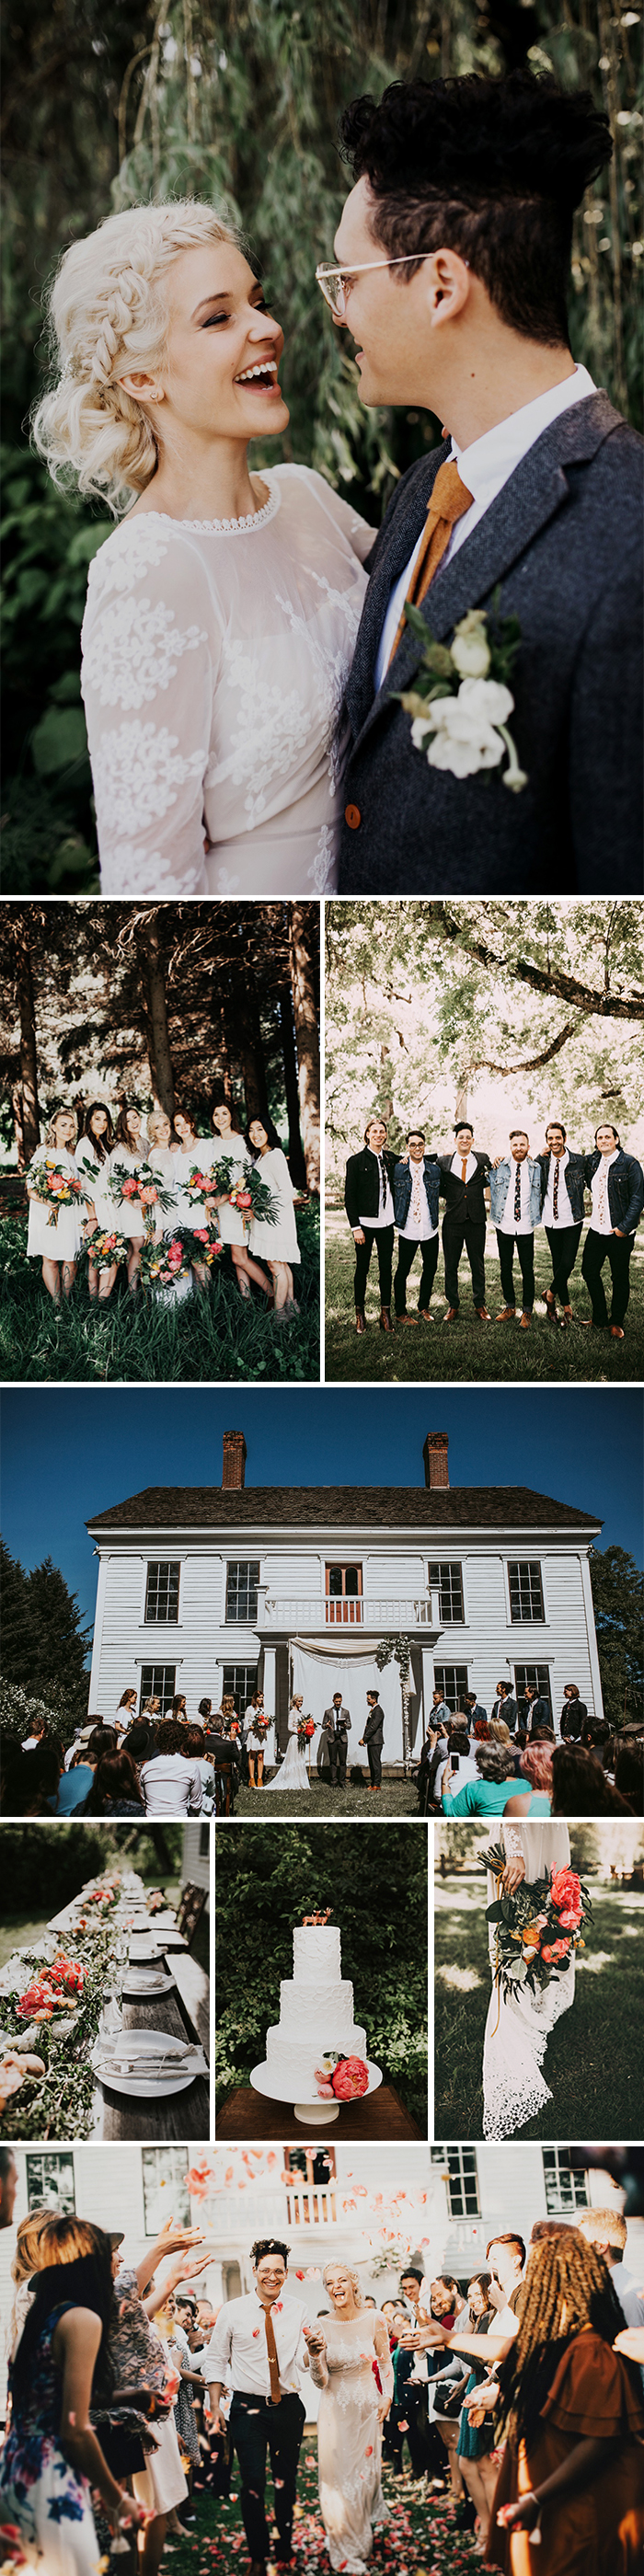 Photos By India Earl Event Planning John Dunfee Venue Sauvie Island Floral Design Magnanimous Co Catering The Lambs Table